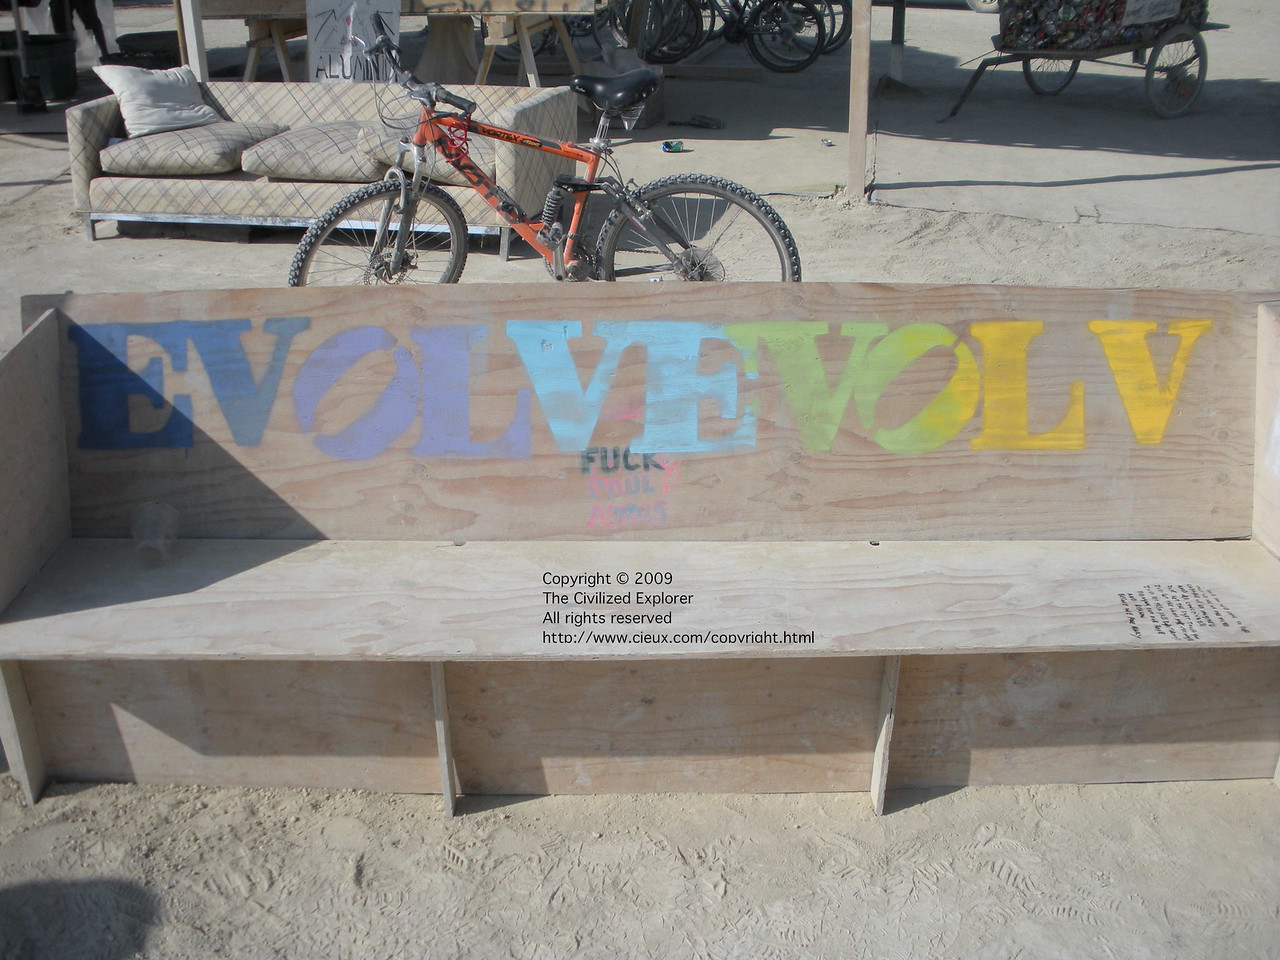 Just a simple bench with a message.